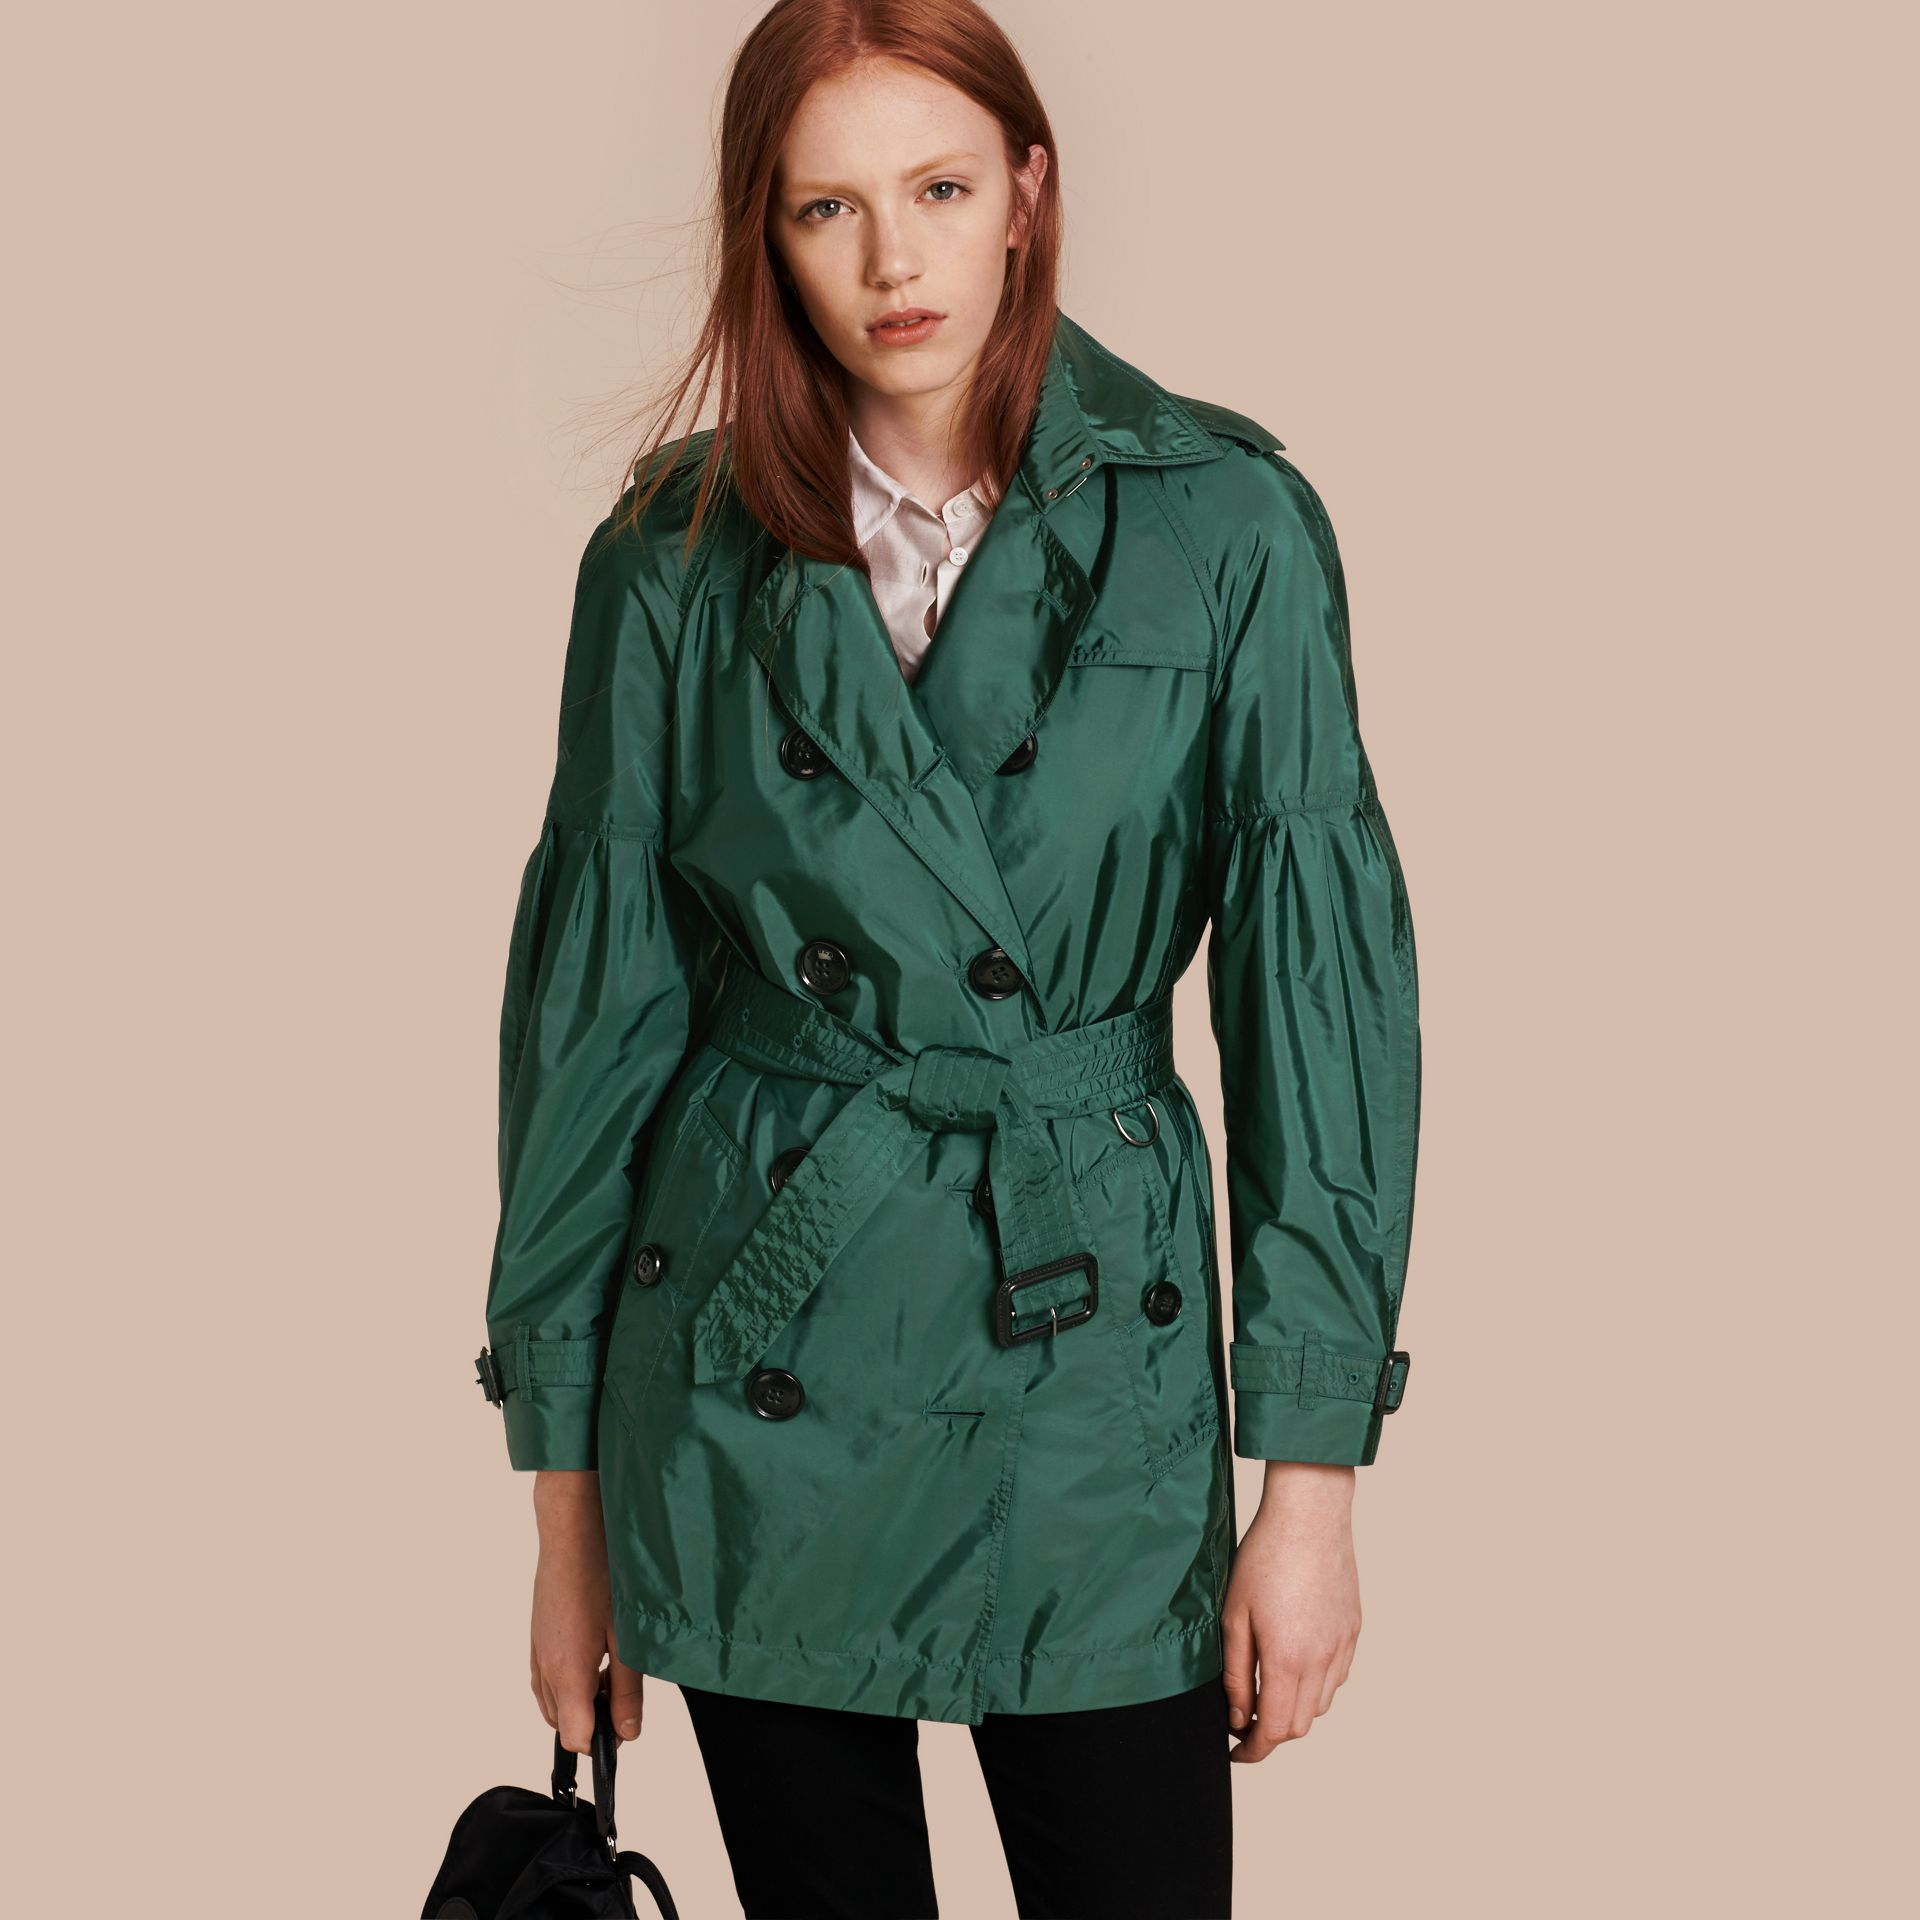 Packaway Trench Coat with Bell Sleeves in Deep Bottle Green - gallery image 1